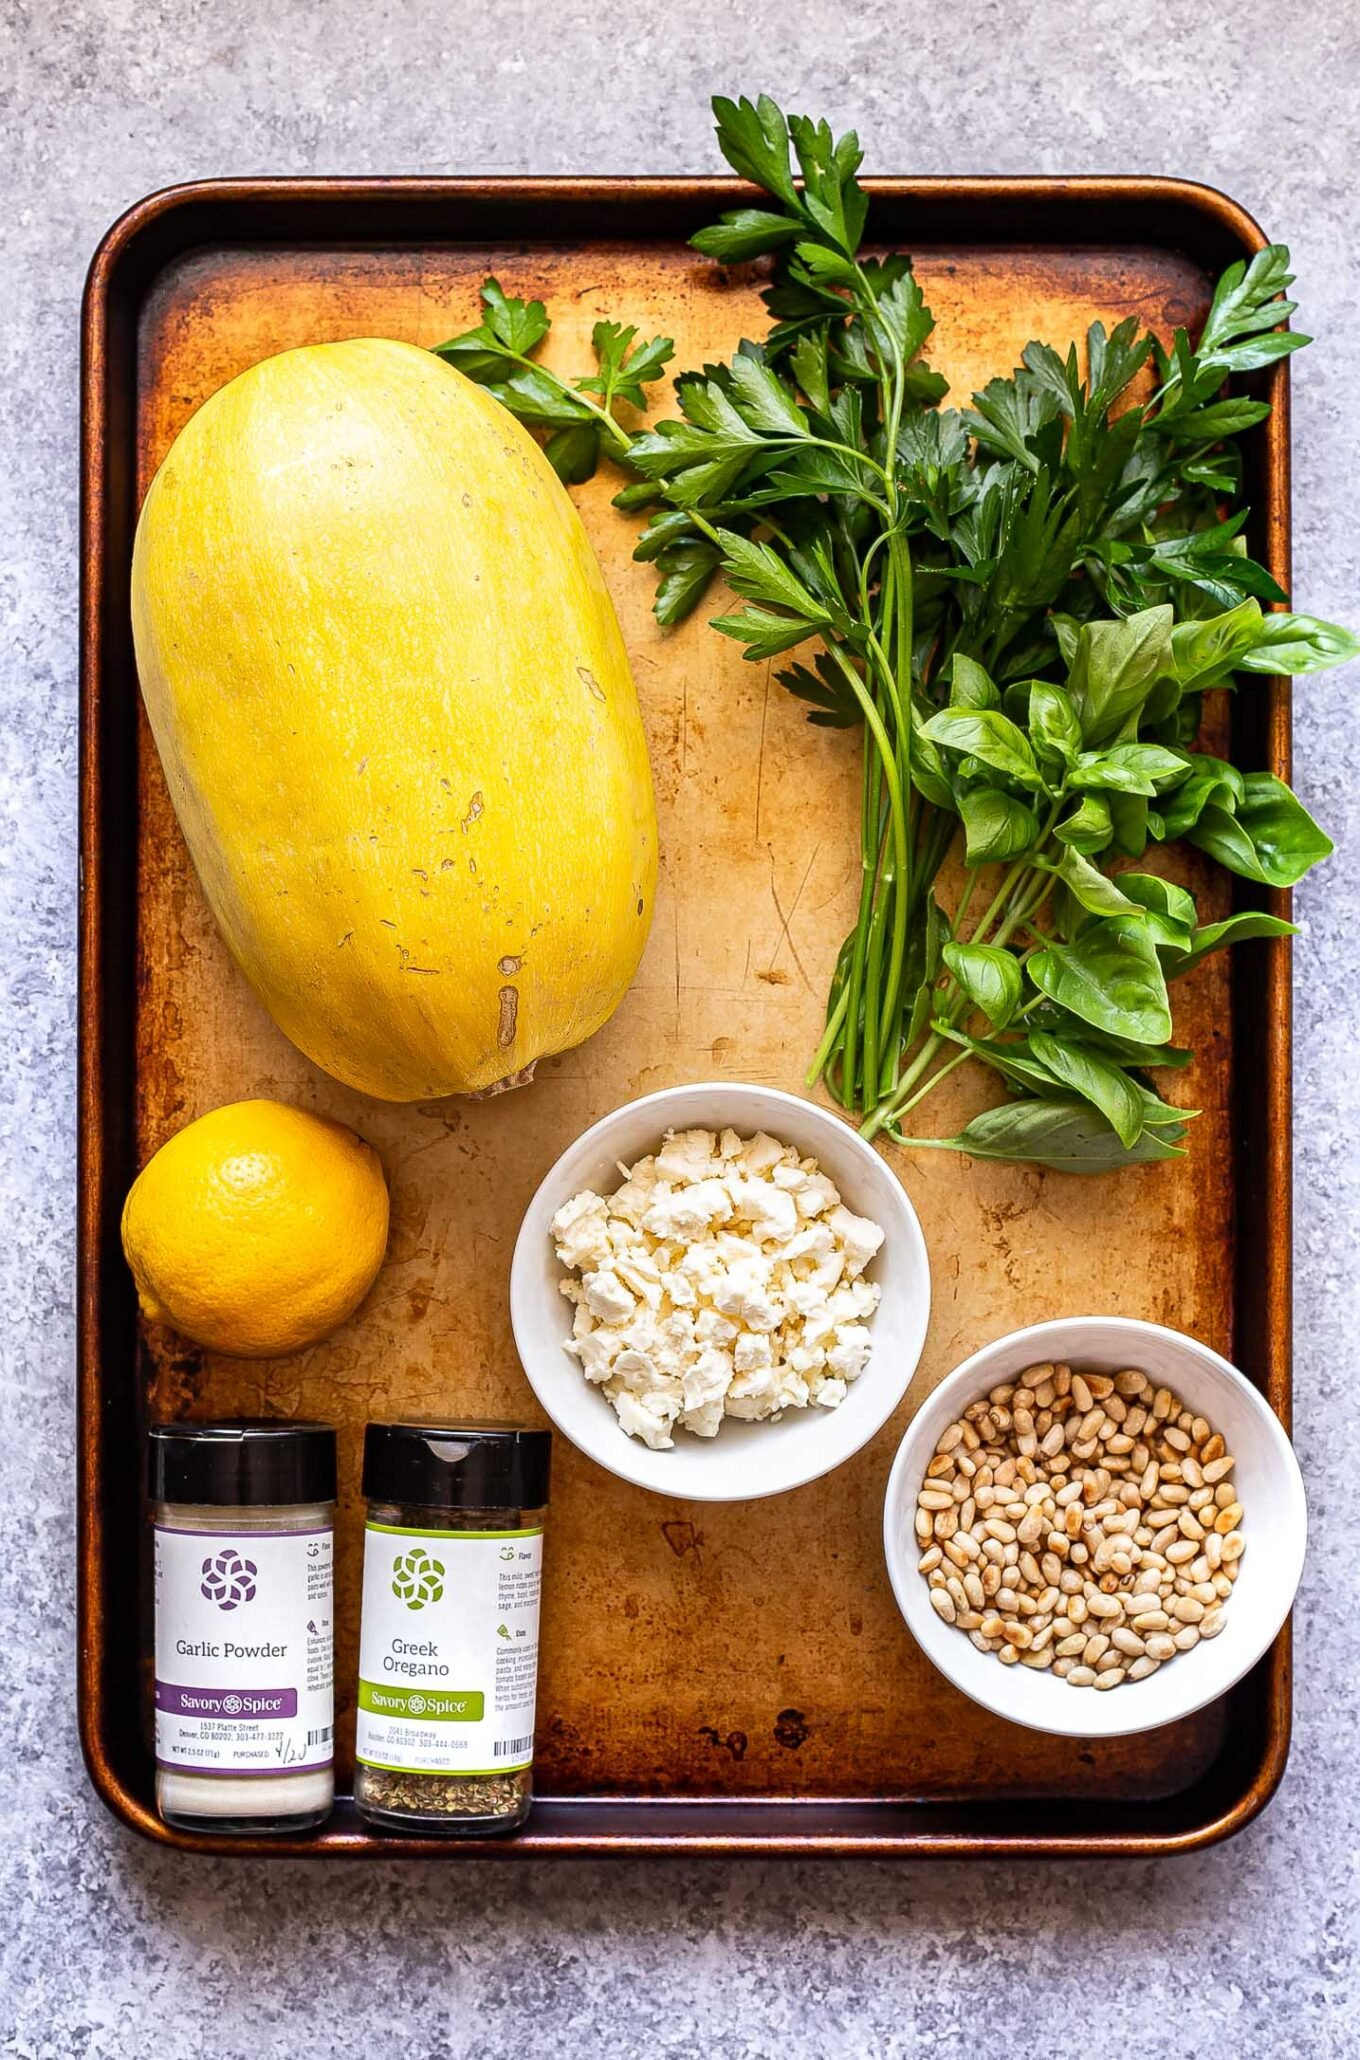 ingredients used to make Spaghetti Squash with Feta and Herbs on a sheet pan.